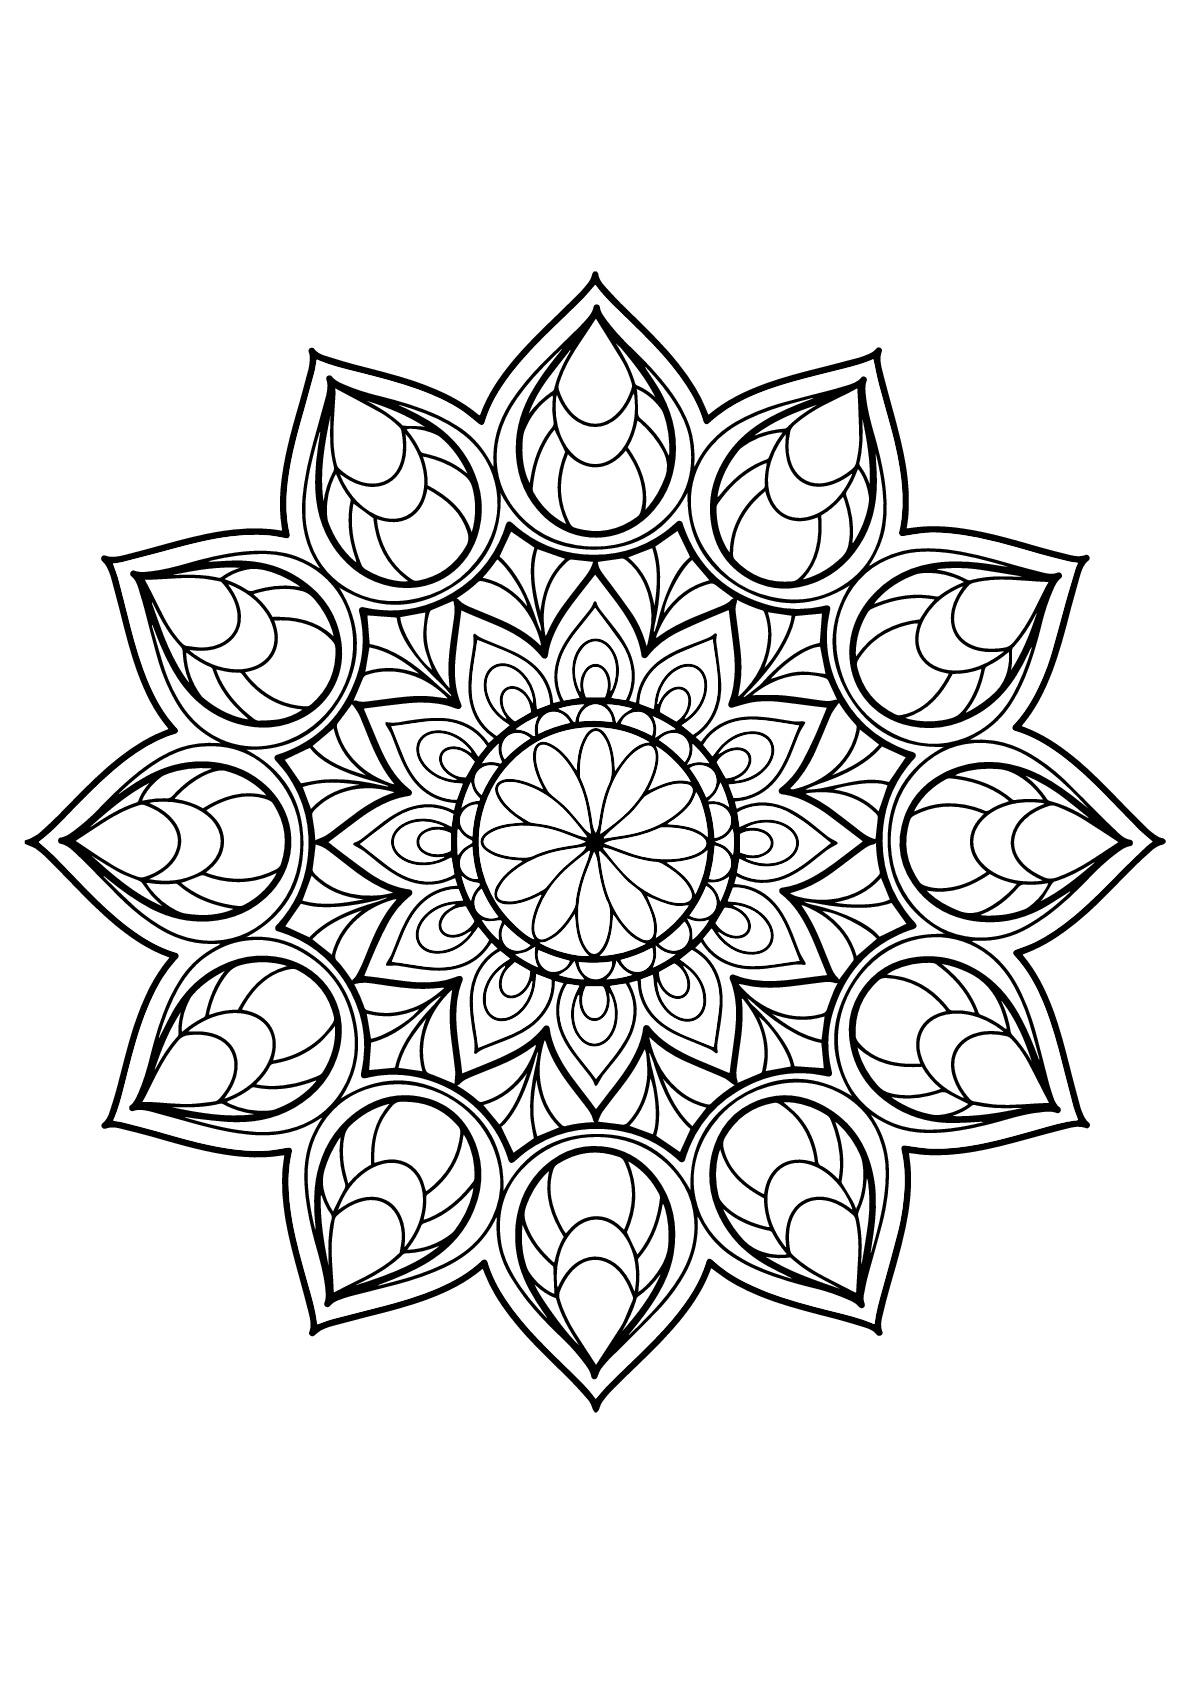 free mandala coloring pages for adults best 15 mandala coloring pages cute image free coloring for coloring free adults pages mandala